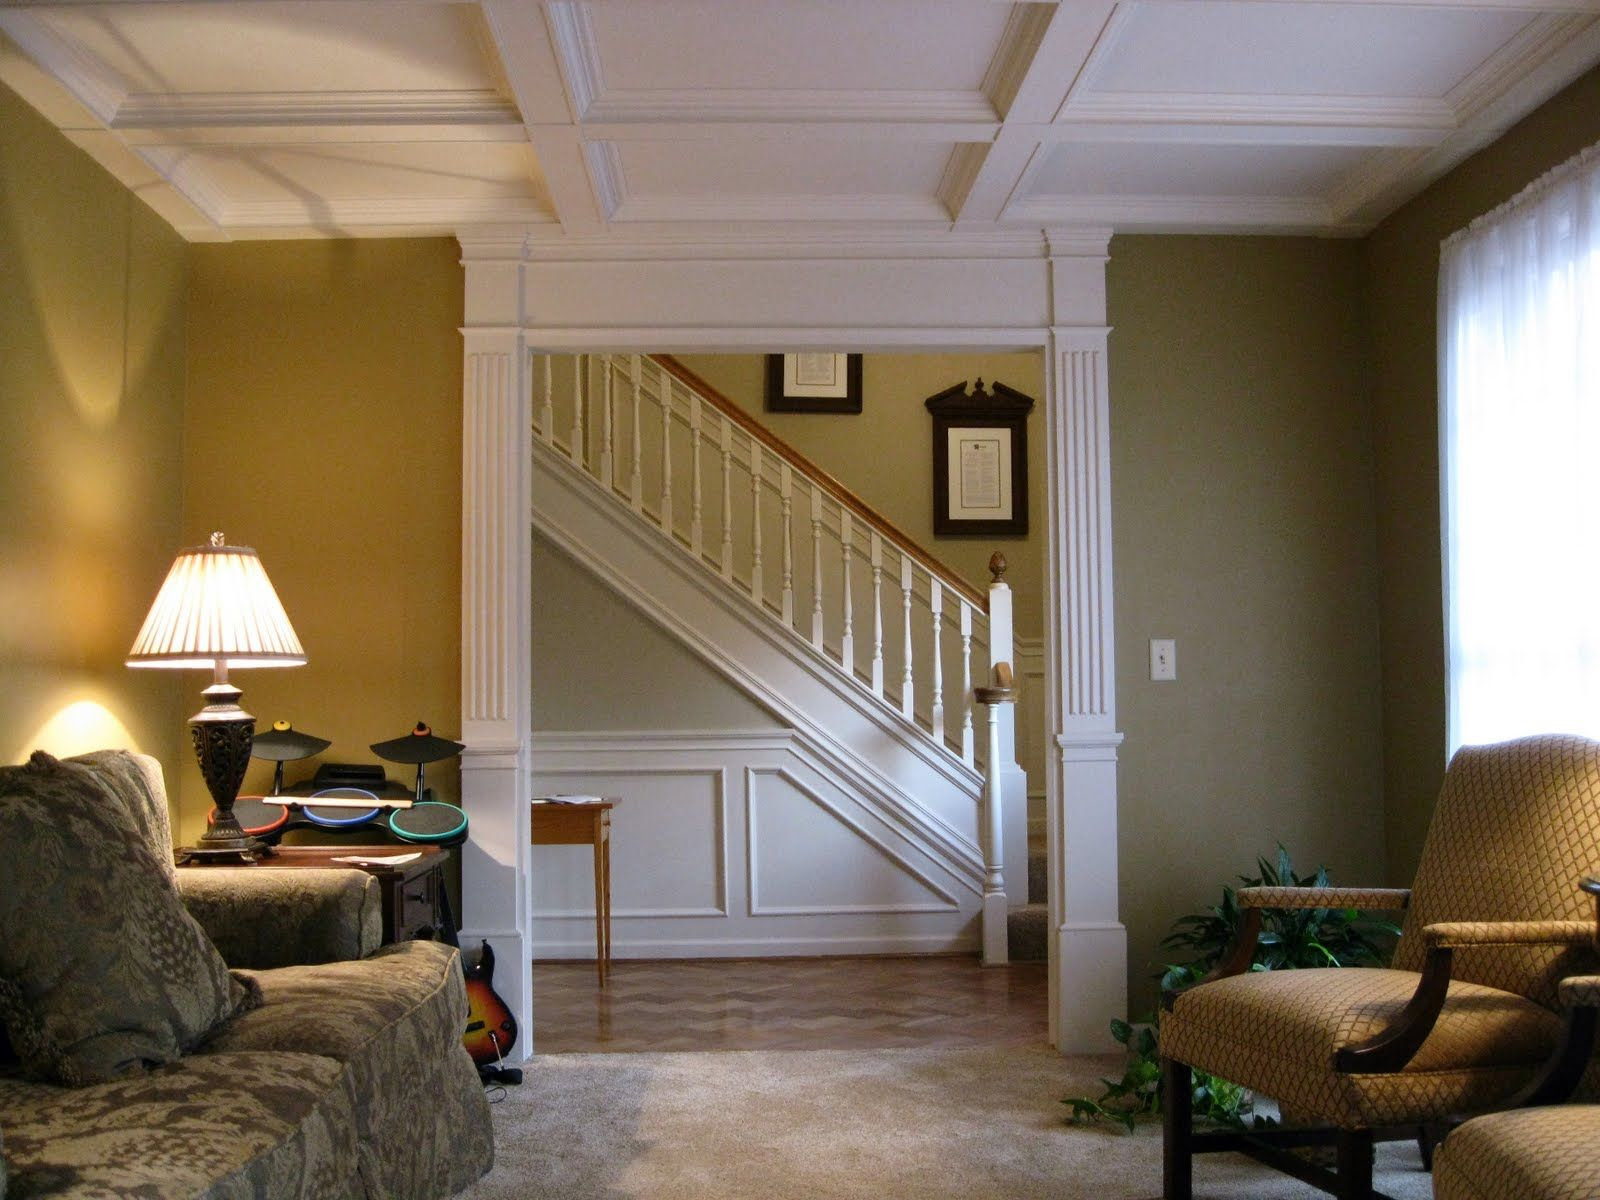 Some Of My Past Home Improvement Projects Coffered Ceiling Columed Doorway Wainscoting